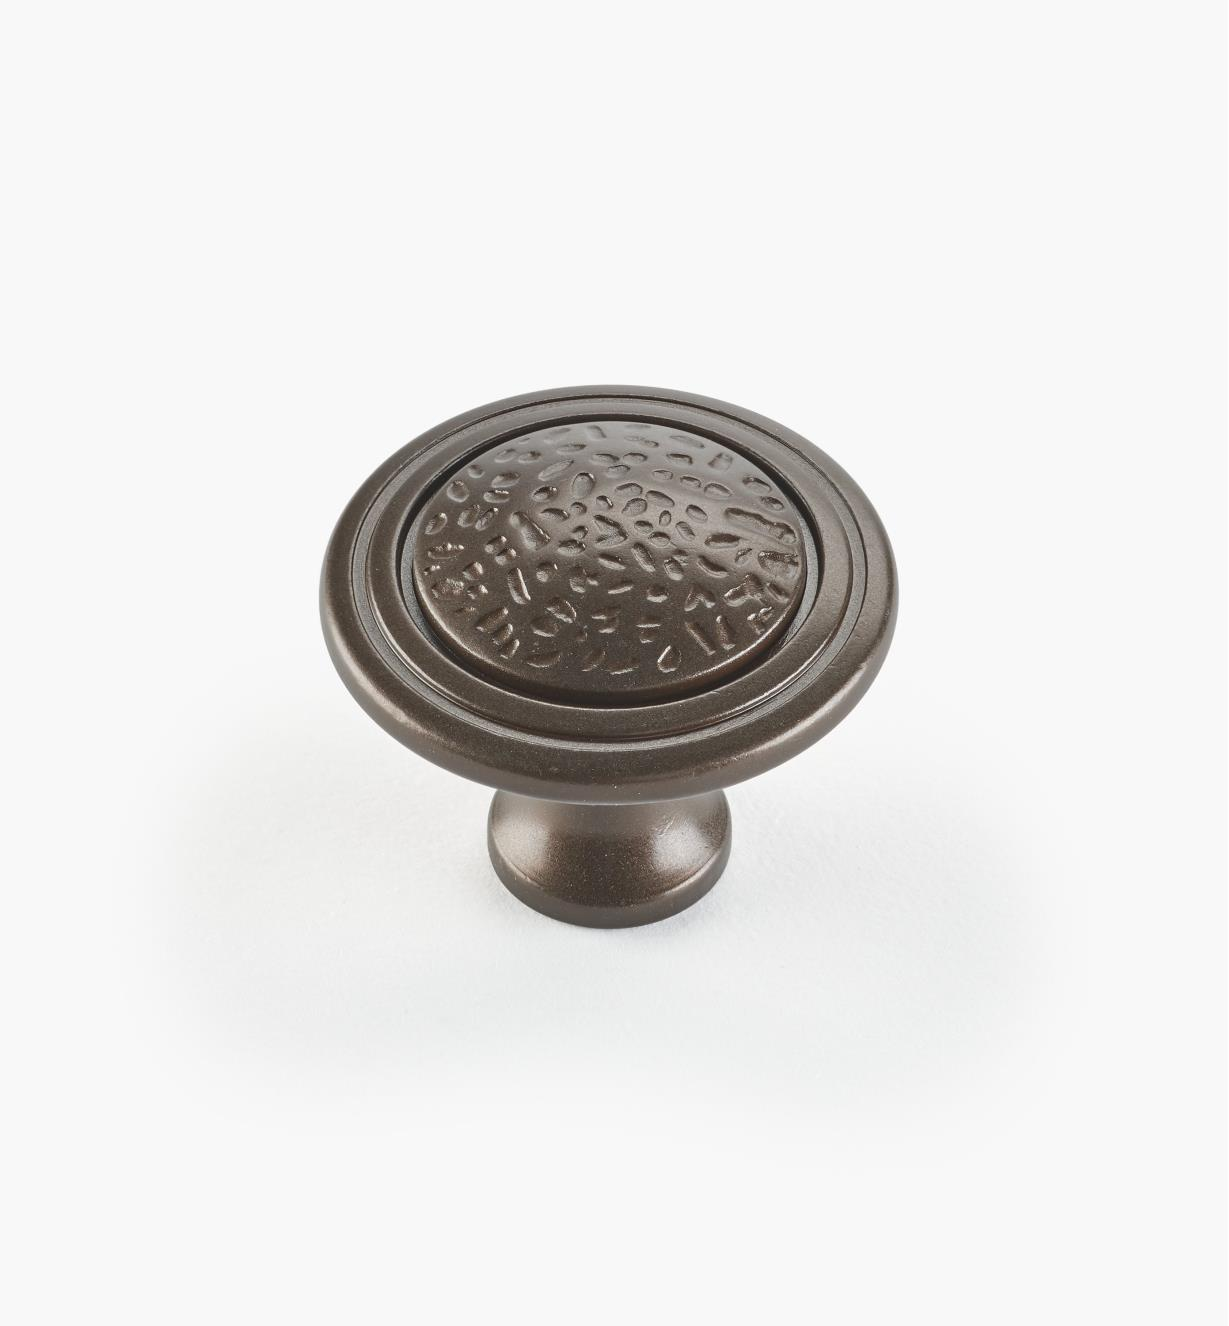 02W4007 - Oil-Rubbed Bronze Knob